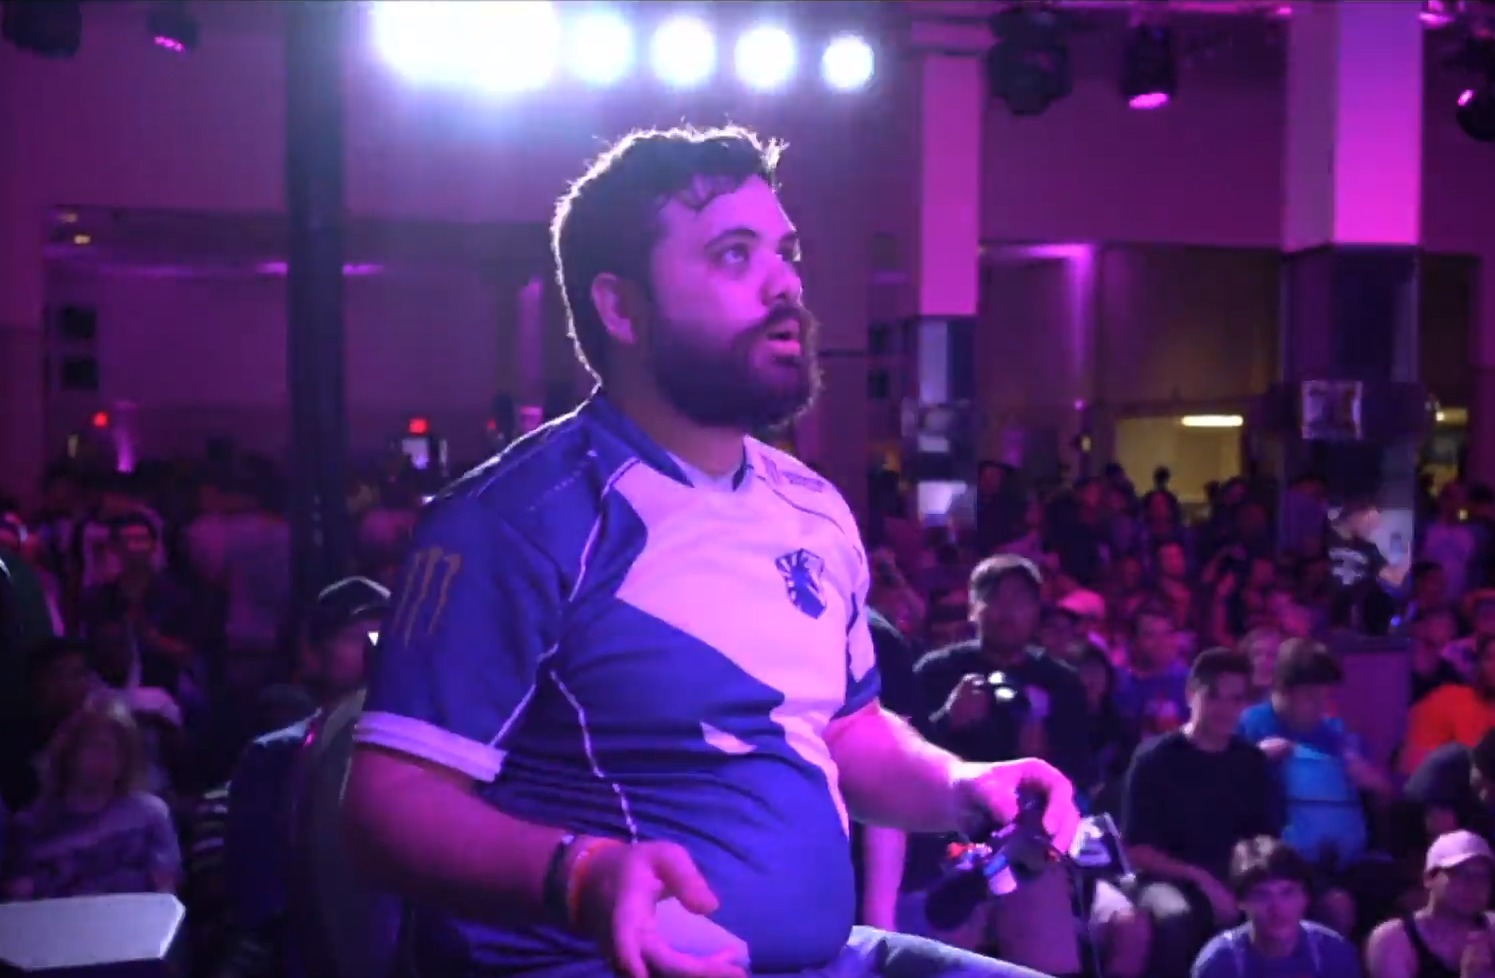 Fan assaults top Smash Bros. player with crab at tournament